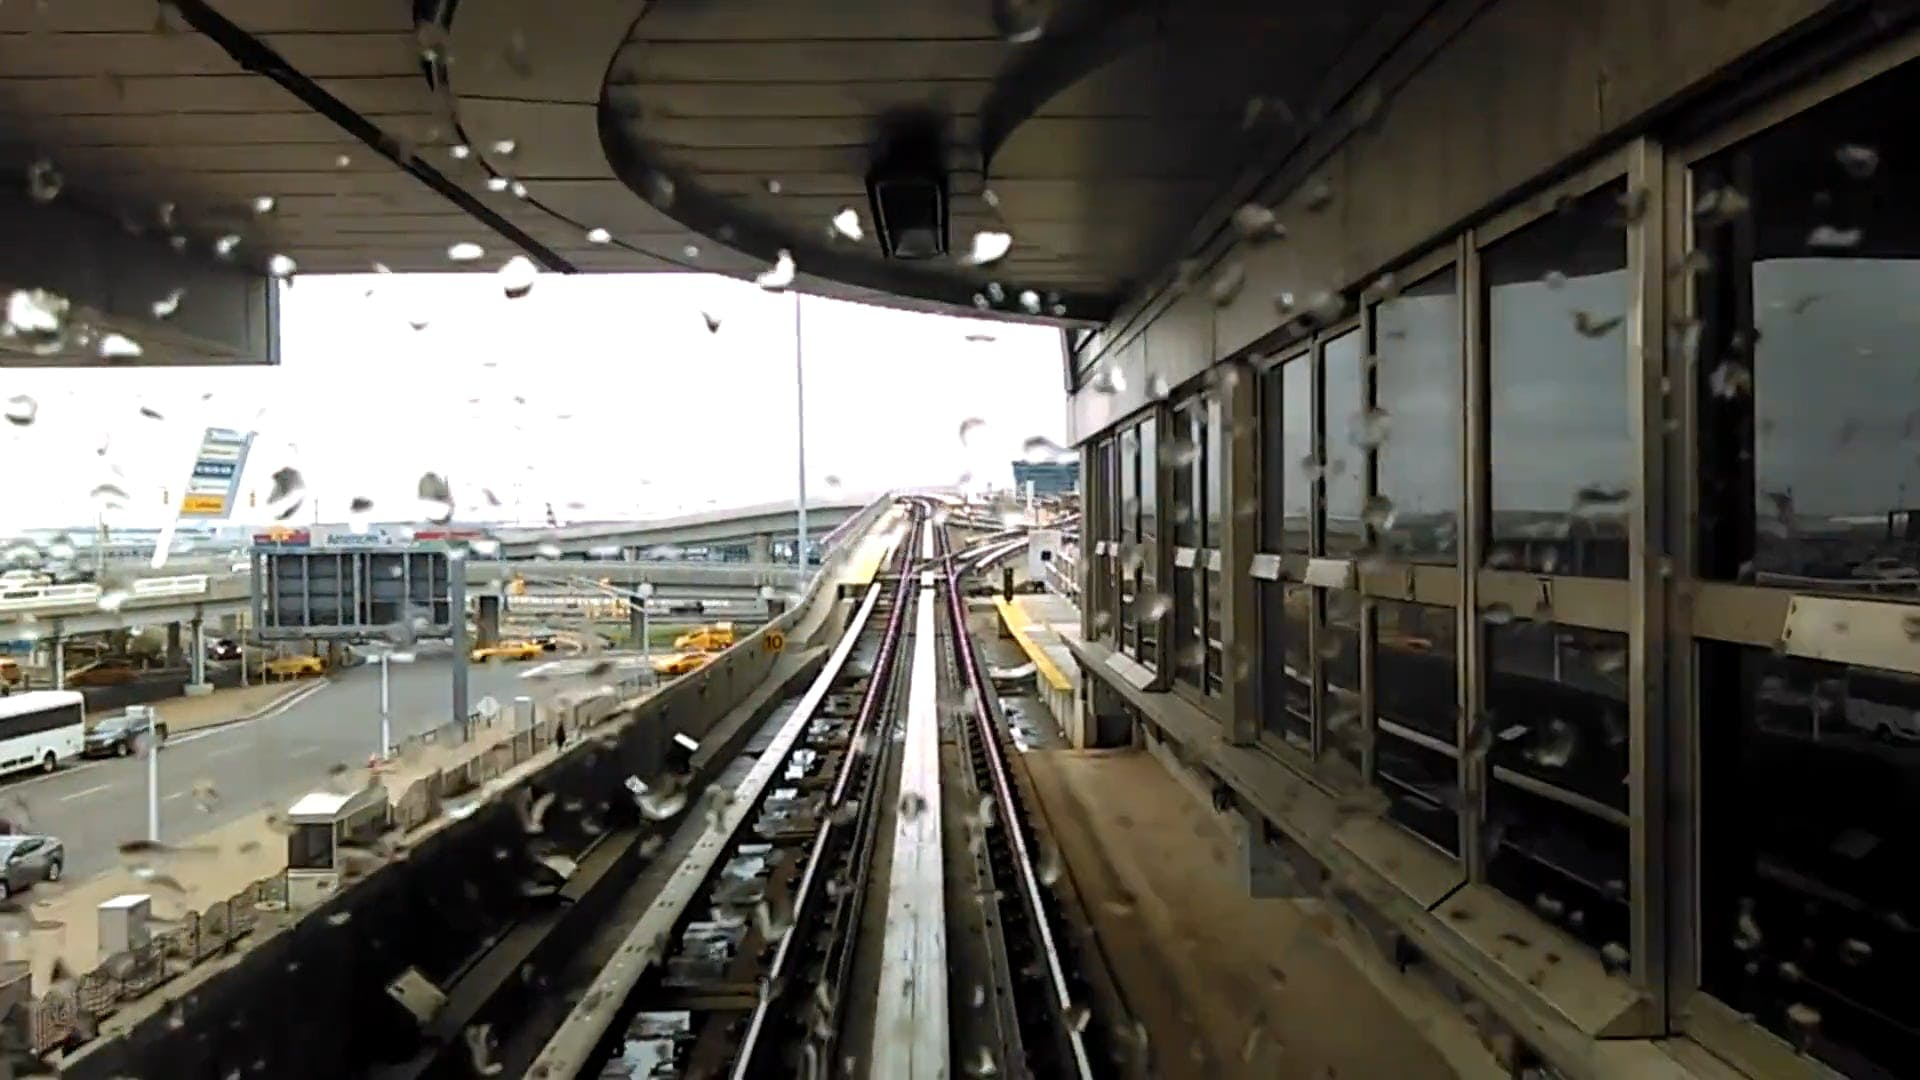 Time Lapse Video Of Airport Train